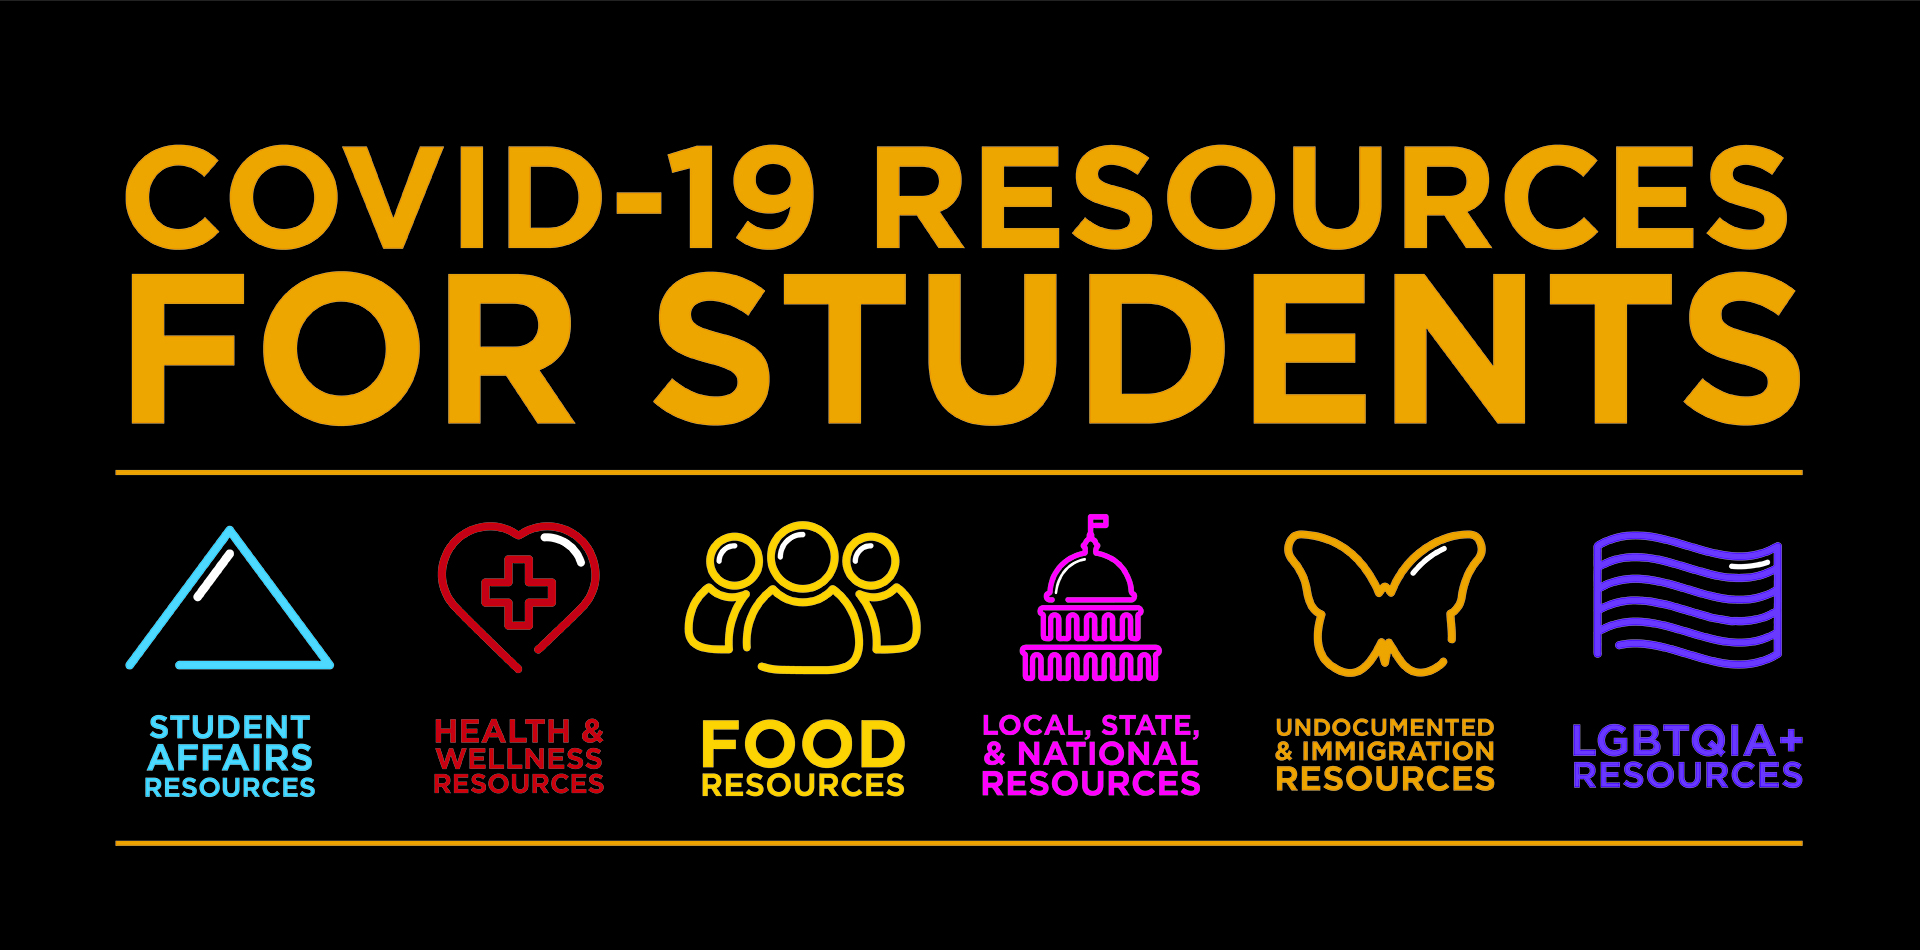 COVID-19 Student Resources - PDF